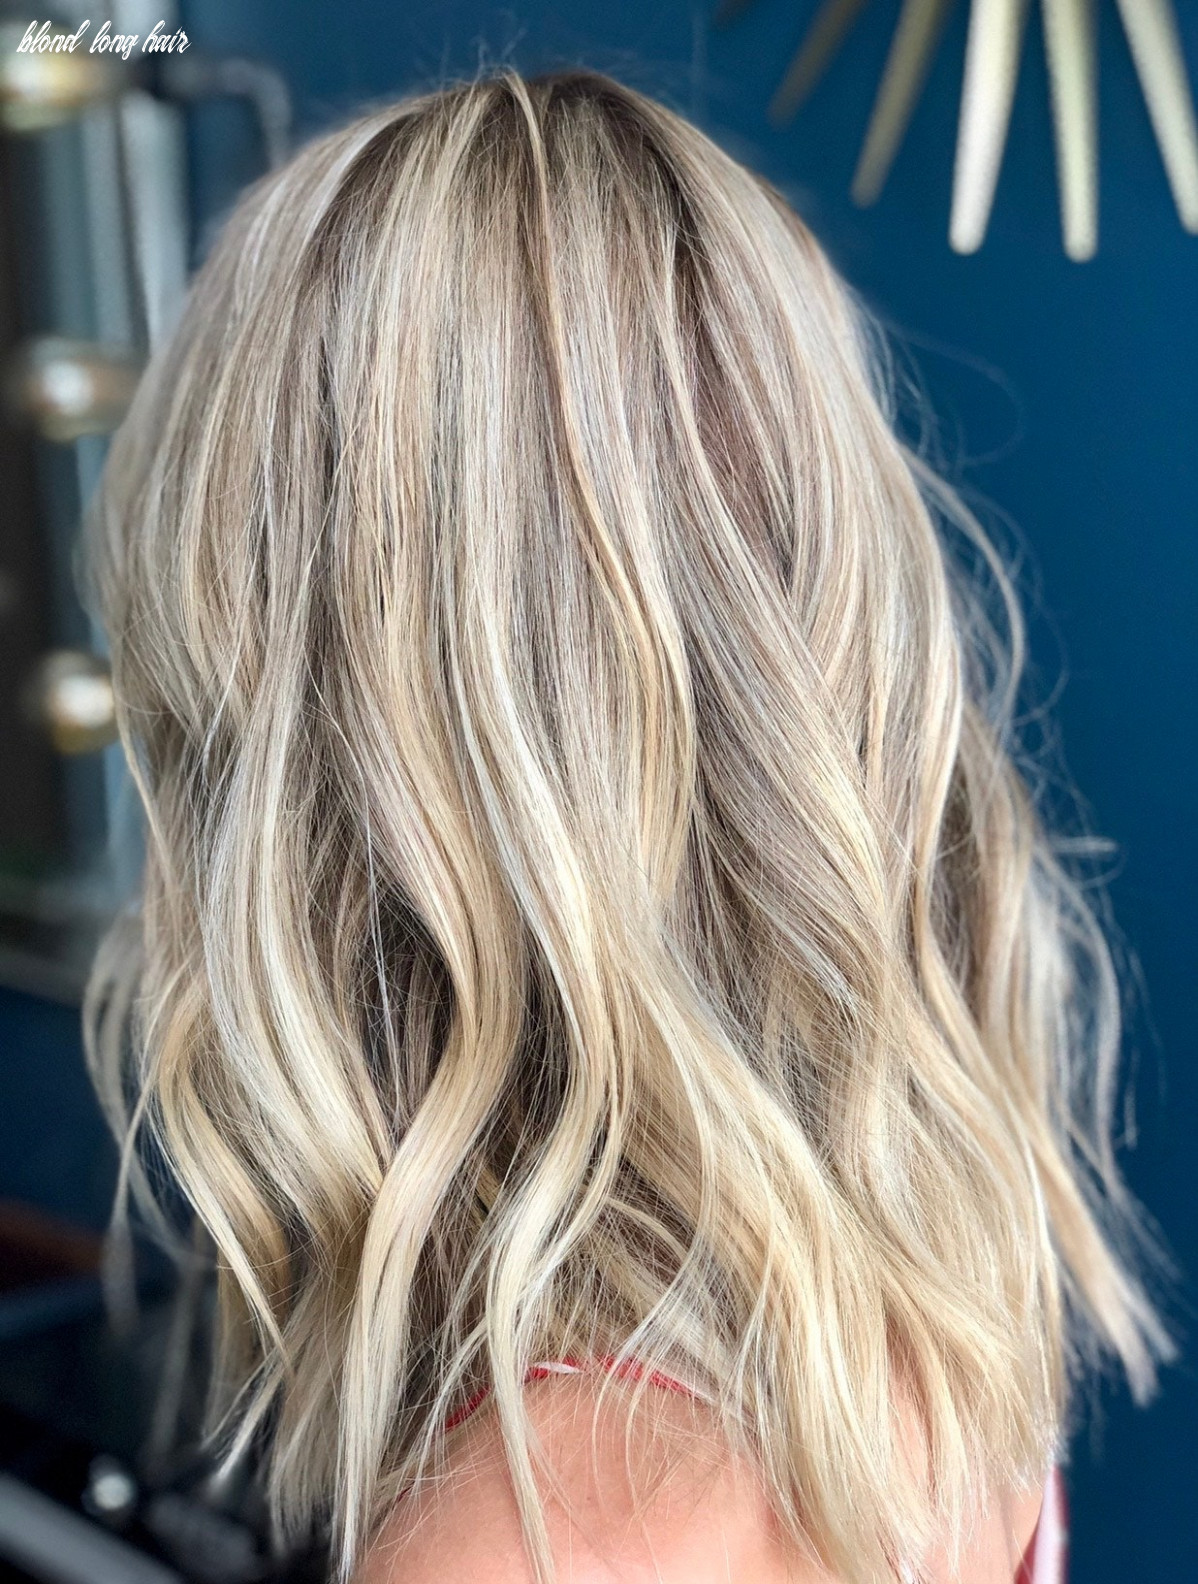 10 best blonde hair colors for 10 | glamour blond long hair